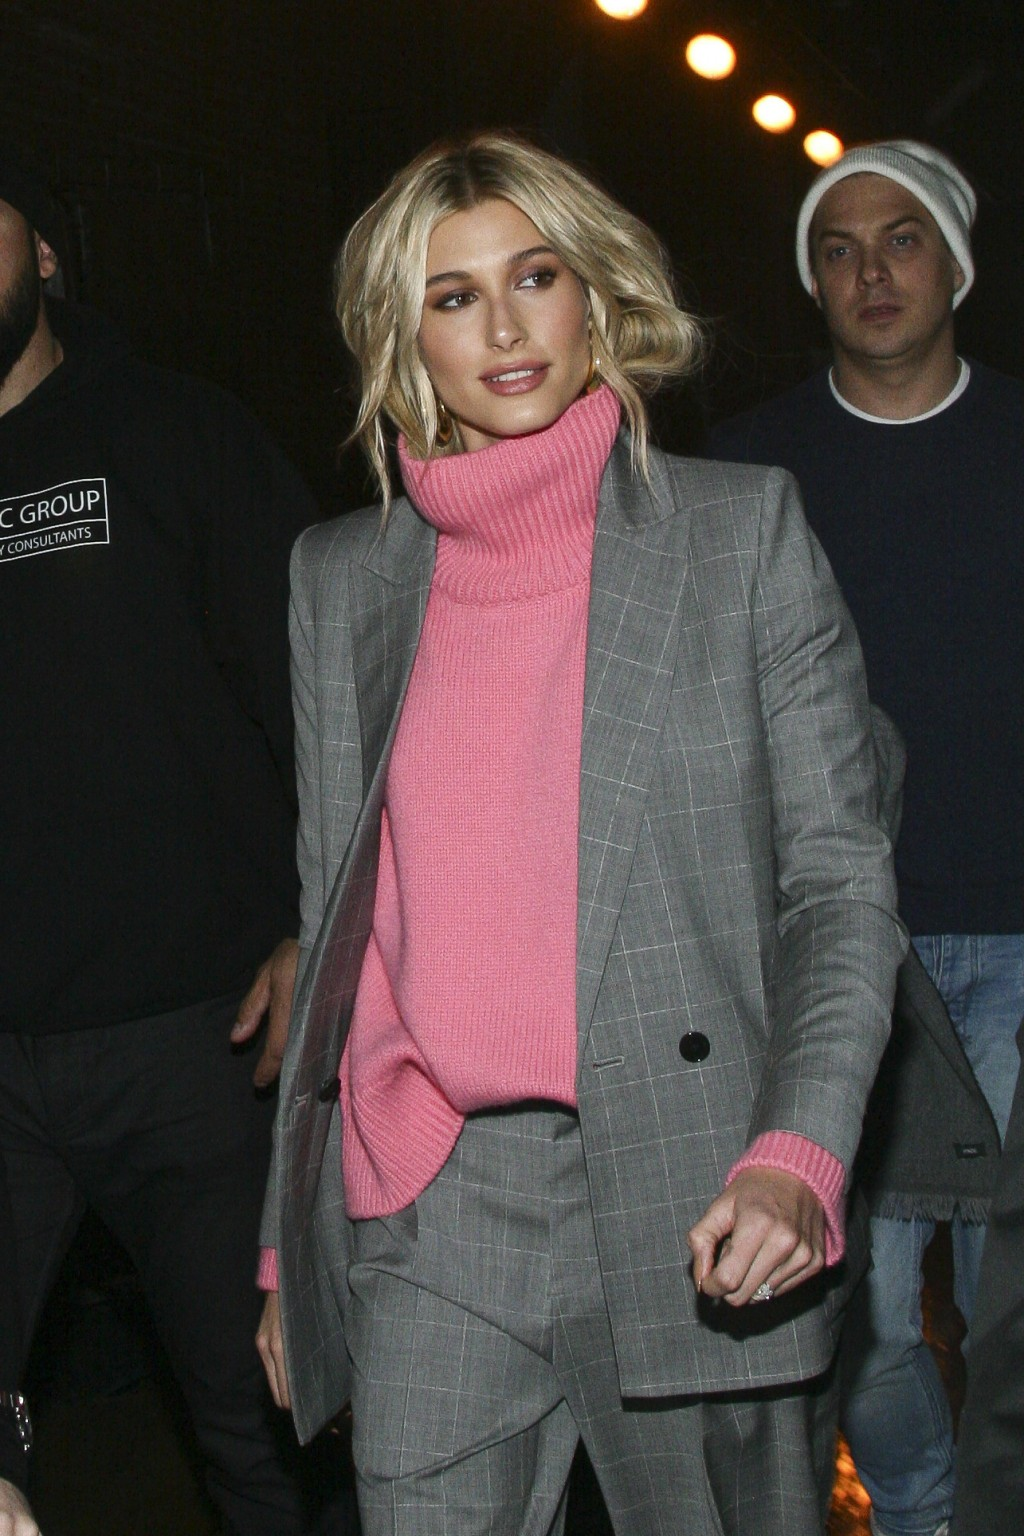 Hailey Baldwin attends the NYFW Fall/Winter 2019 Zadig & Voltaire fashion show at The Tunnel on Monday, Feb. 11, 2019, in New York. (Photo by Andy Kro...